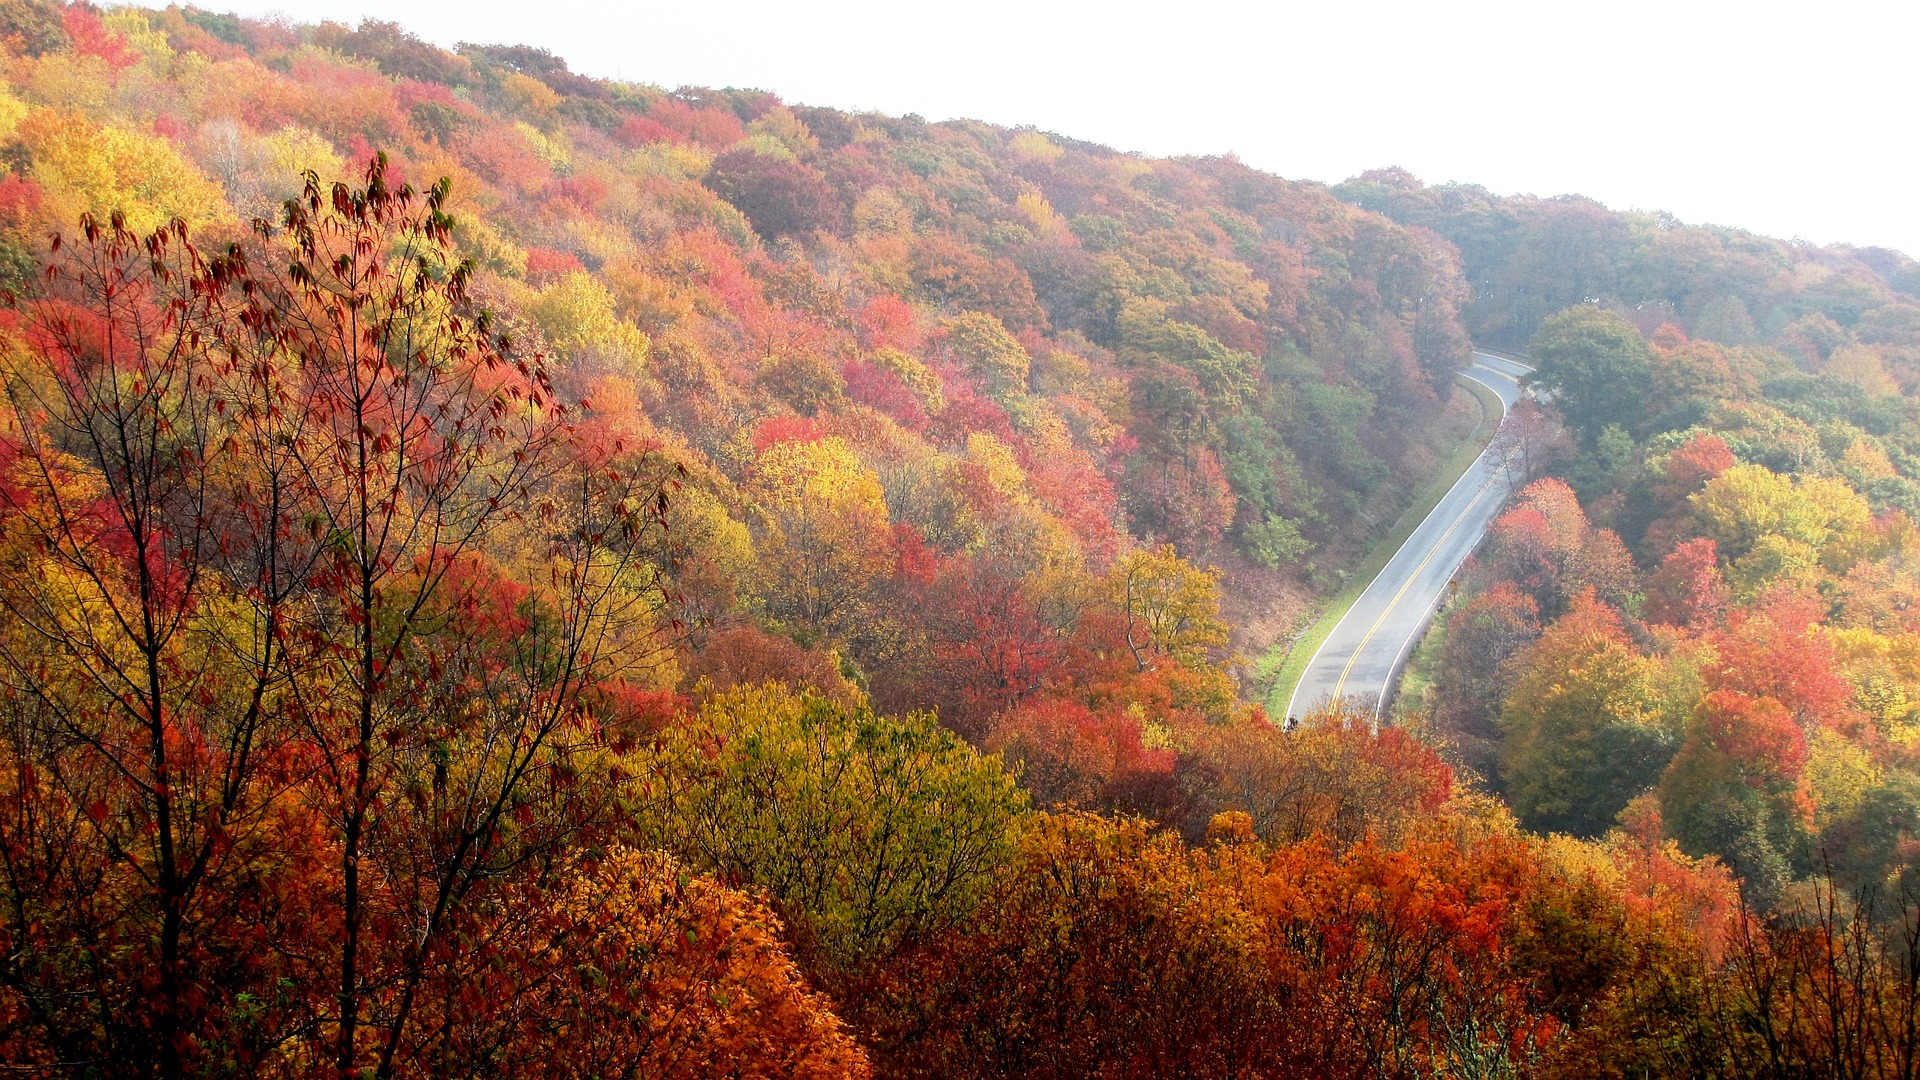 A road winding through a mountain covered in trees with autumn leaves.